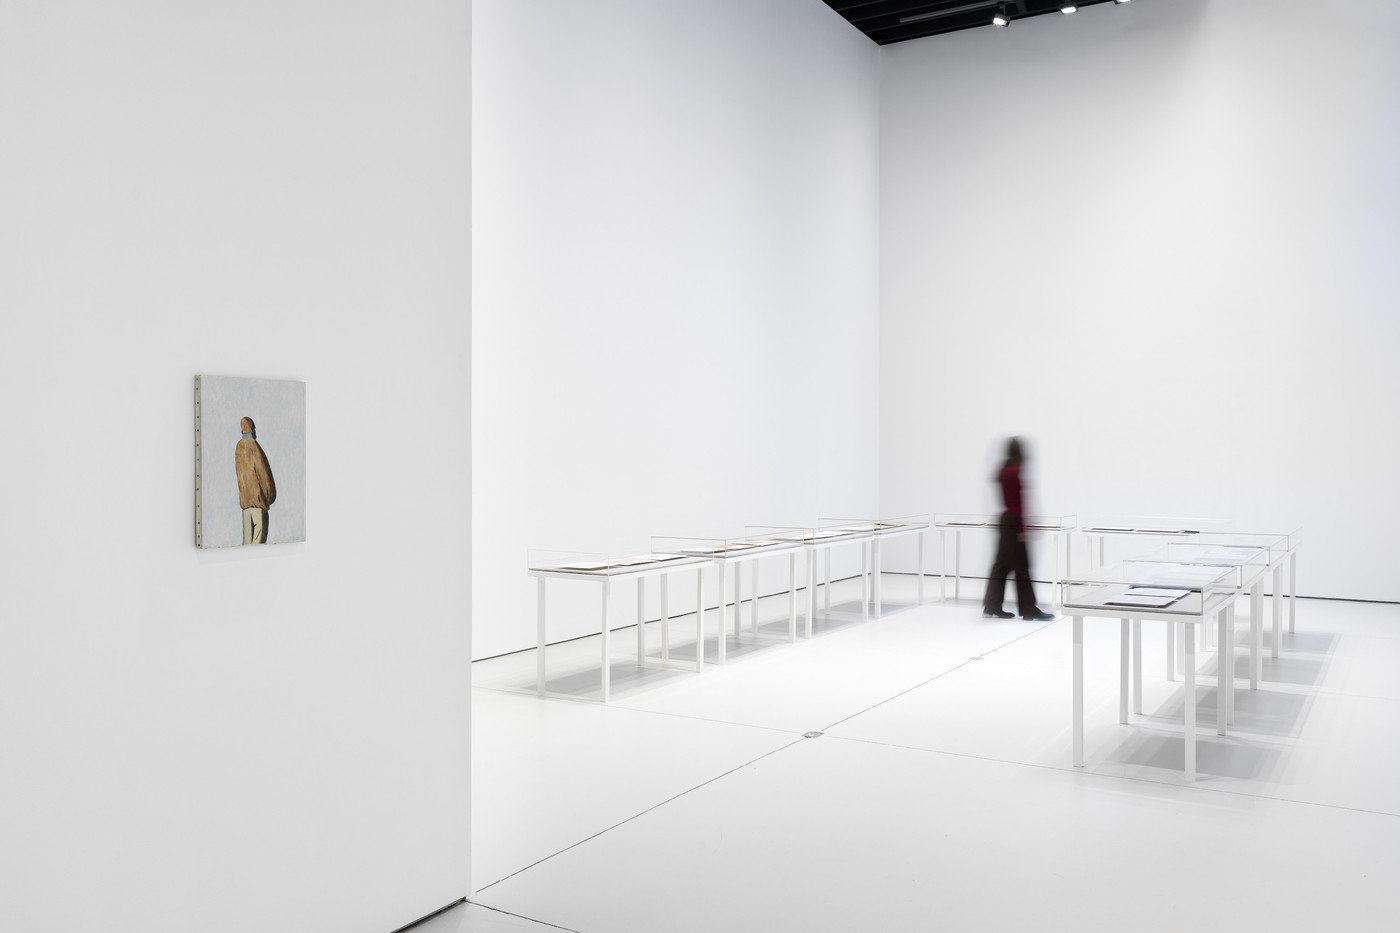 gallery view with visitor